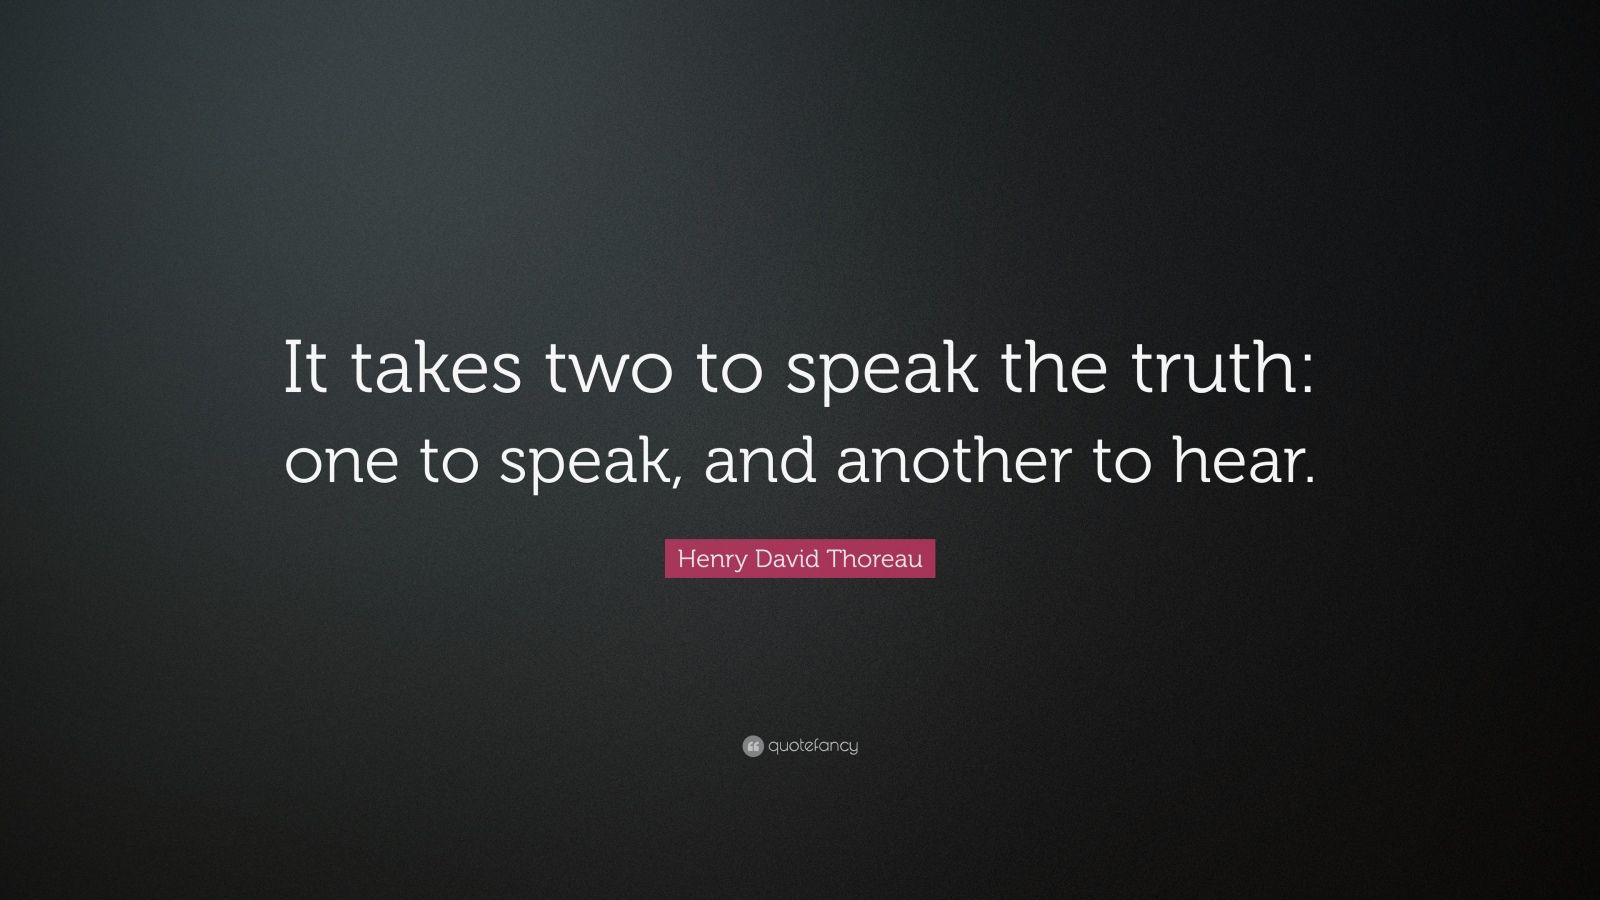 """Henry David Thoreau Quote: """"It takes two to speak the truth: one to speak, and another to hear."""""""